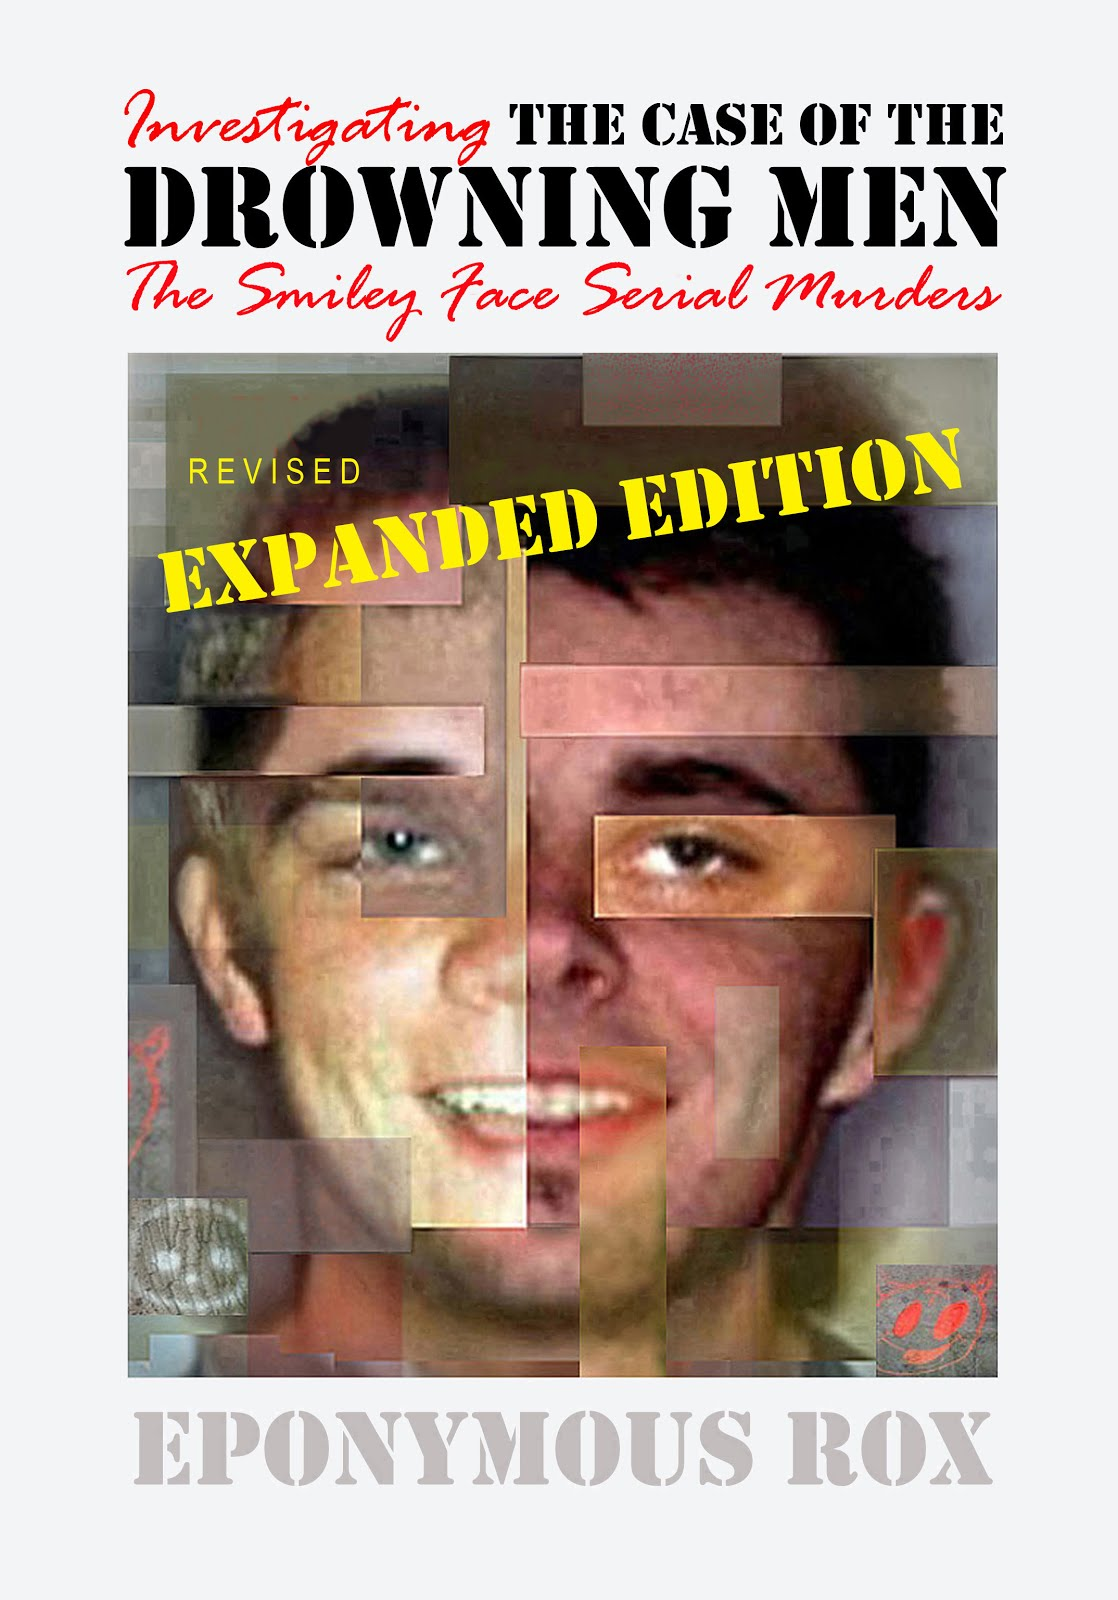 History and analysis of the 'Smiley Face Serial Murders'  with pics and forensics